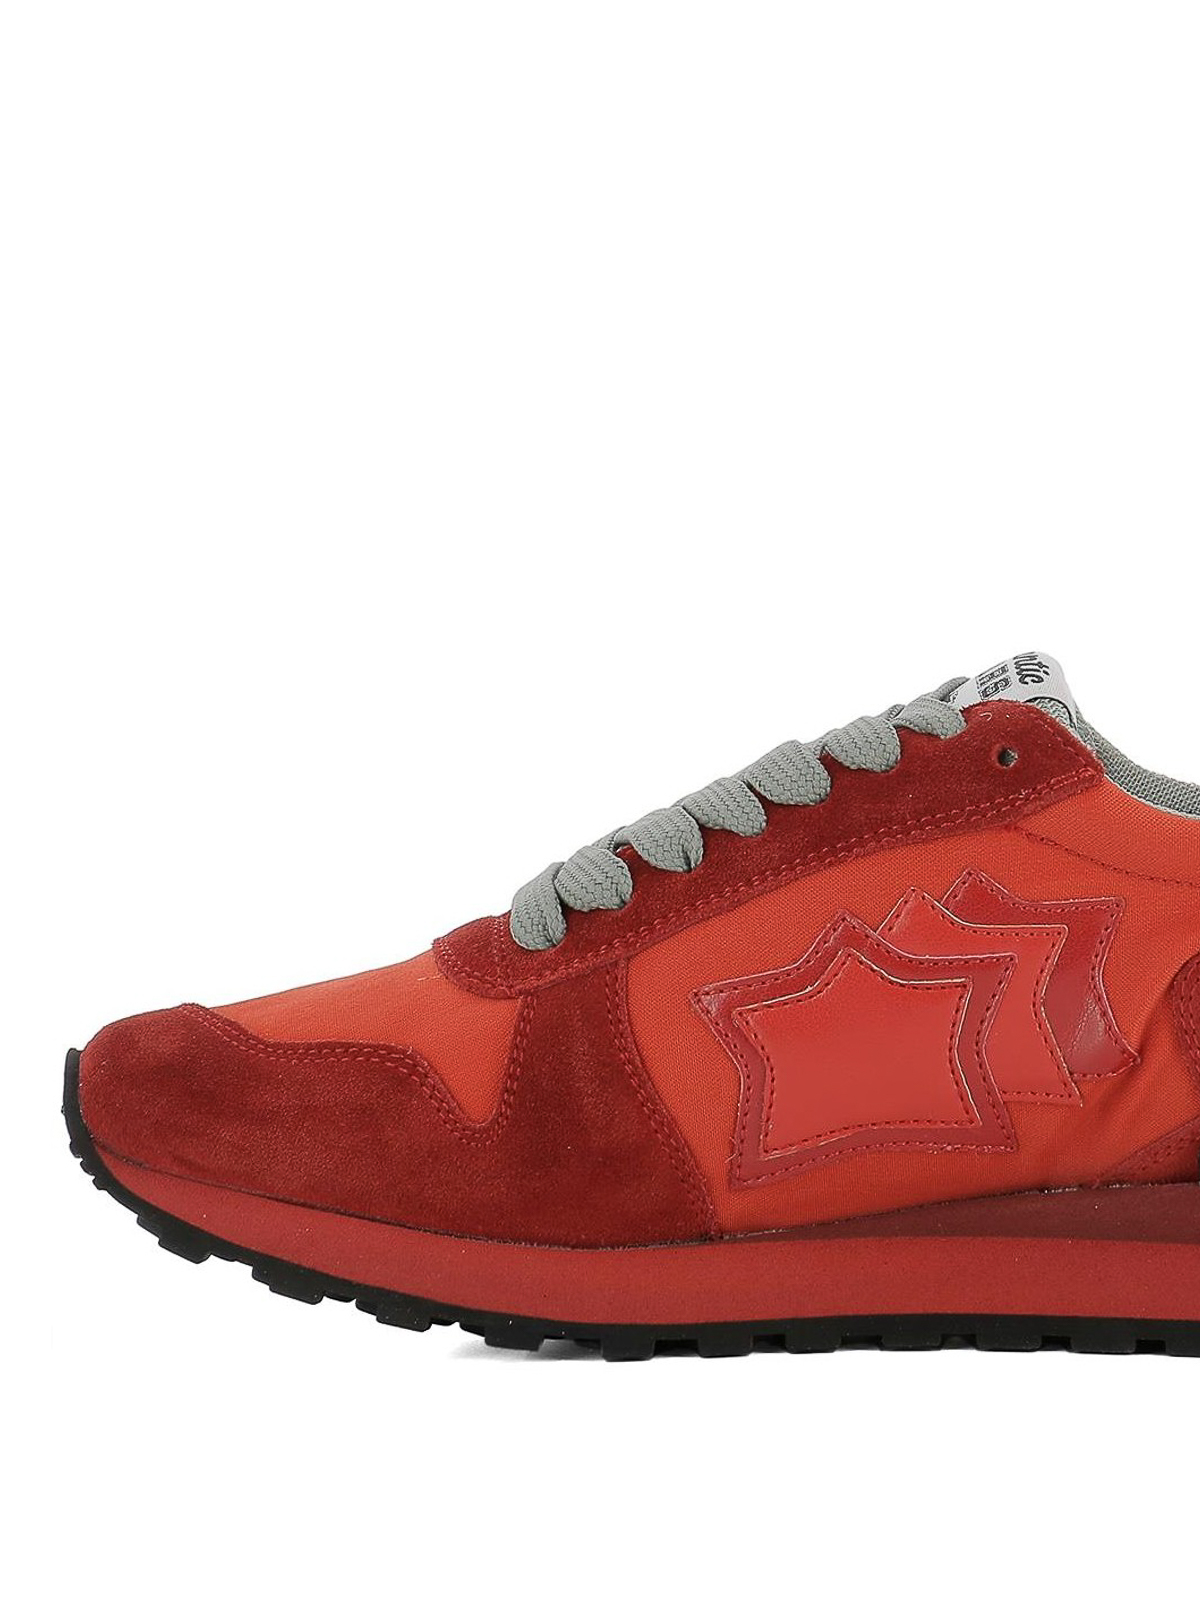 Alhena sneakers - Red Atlantic Stars Mu02vA6